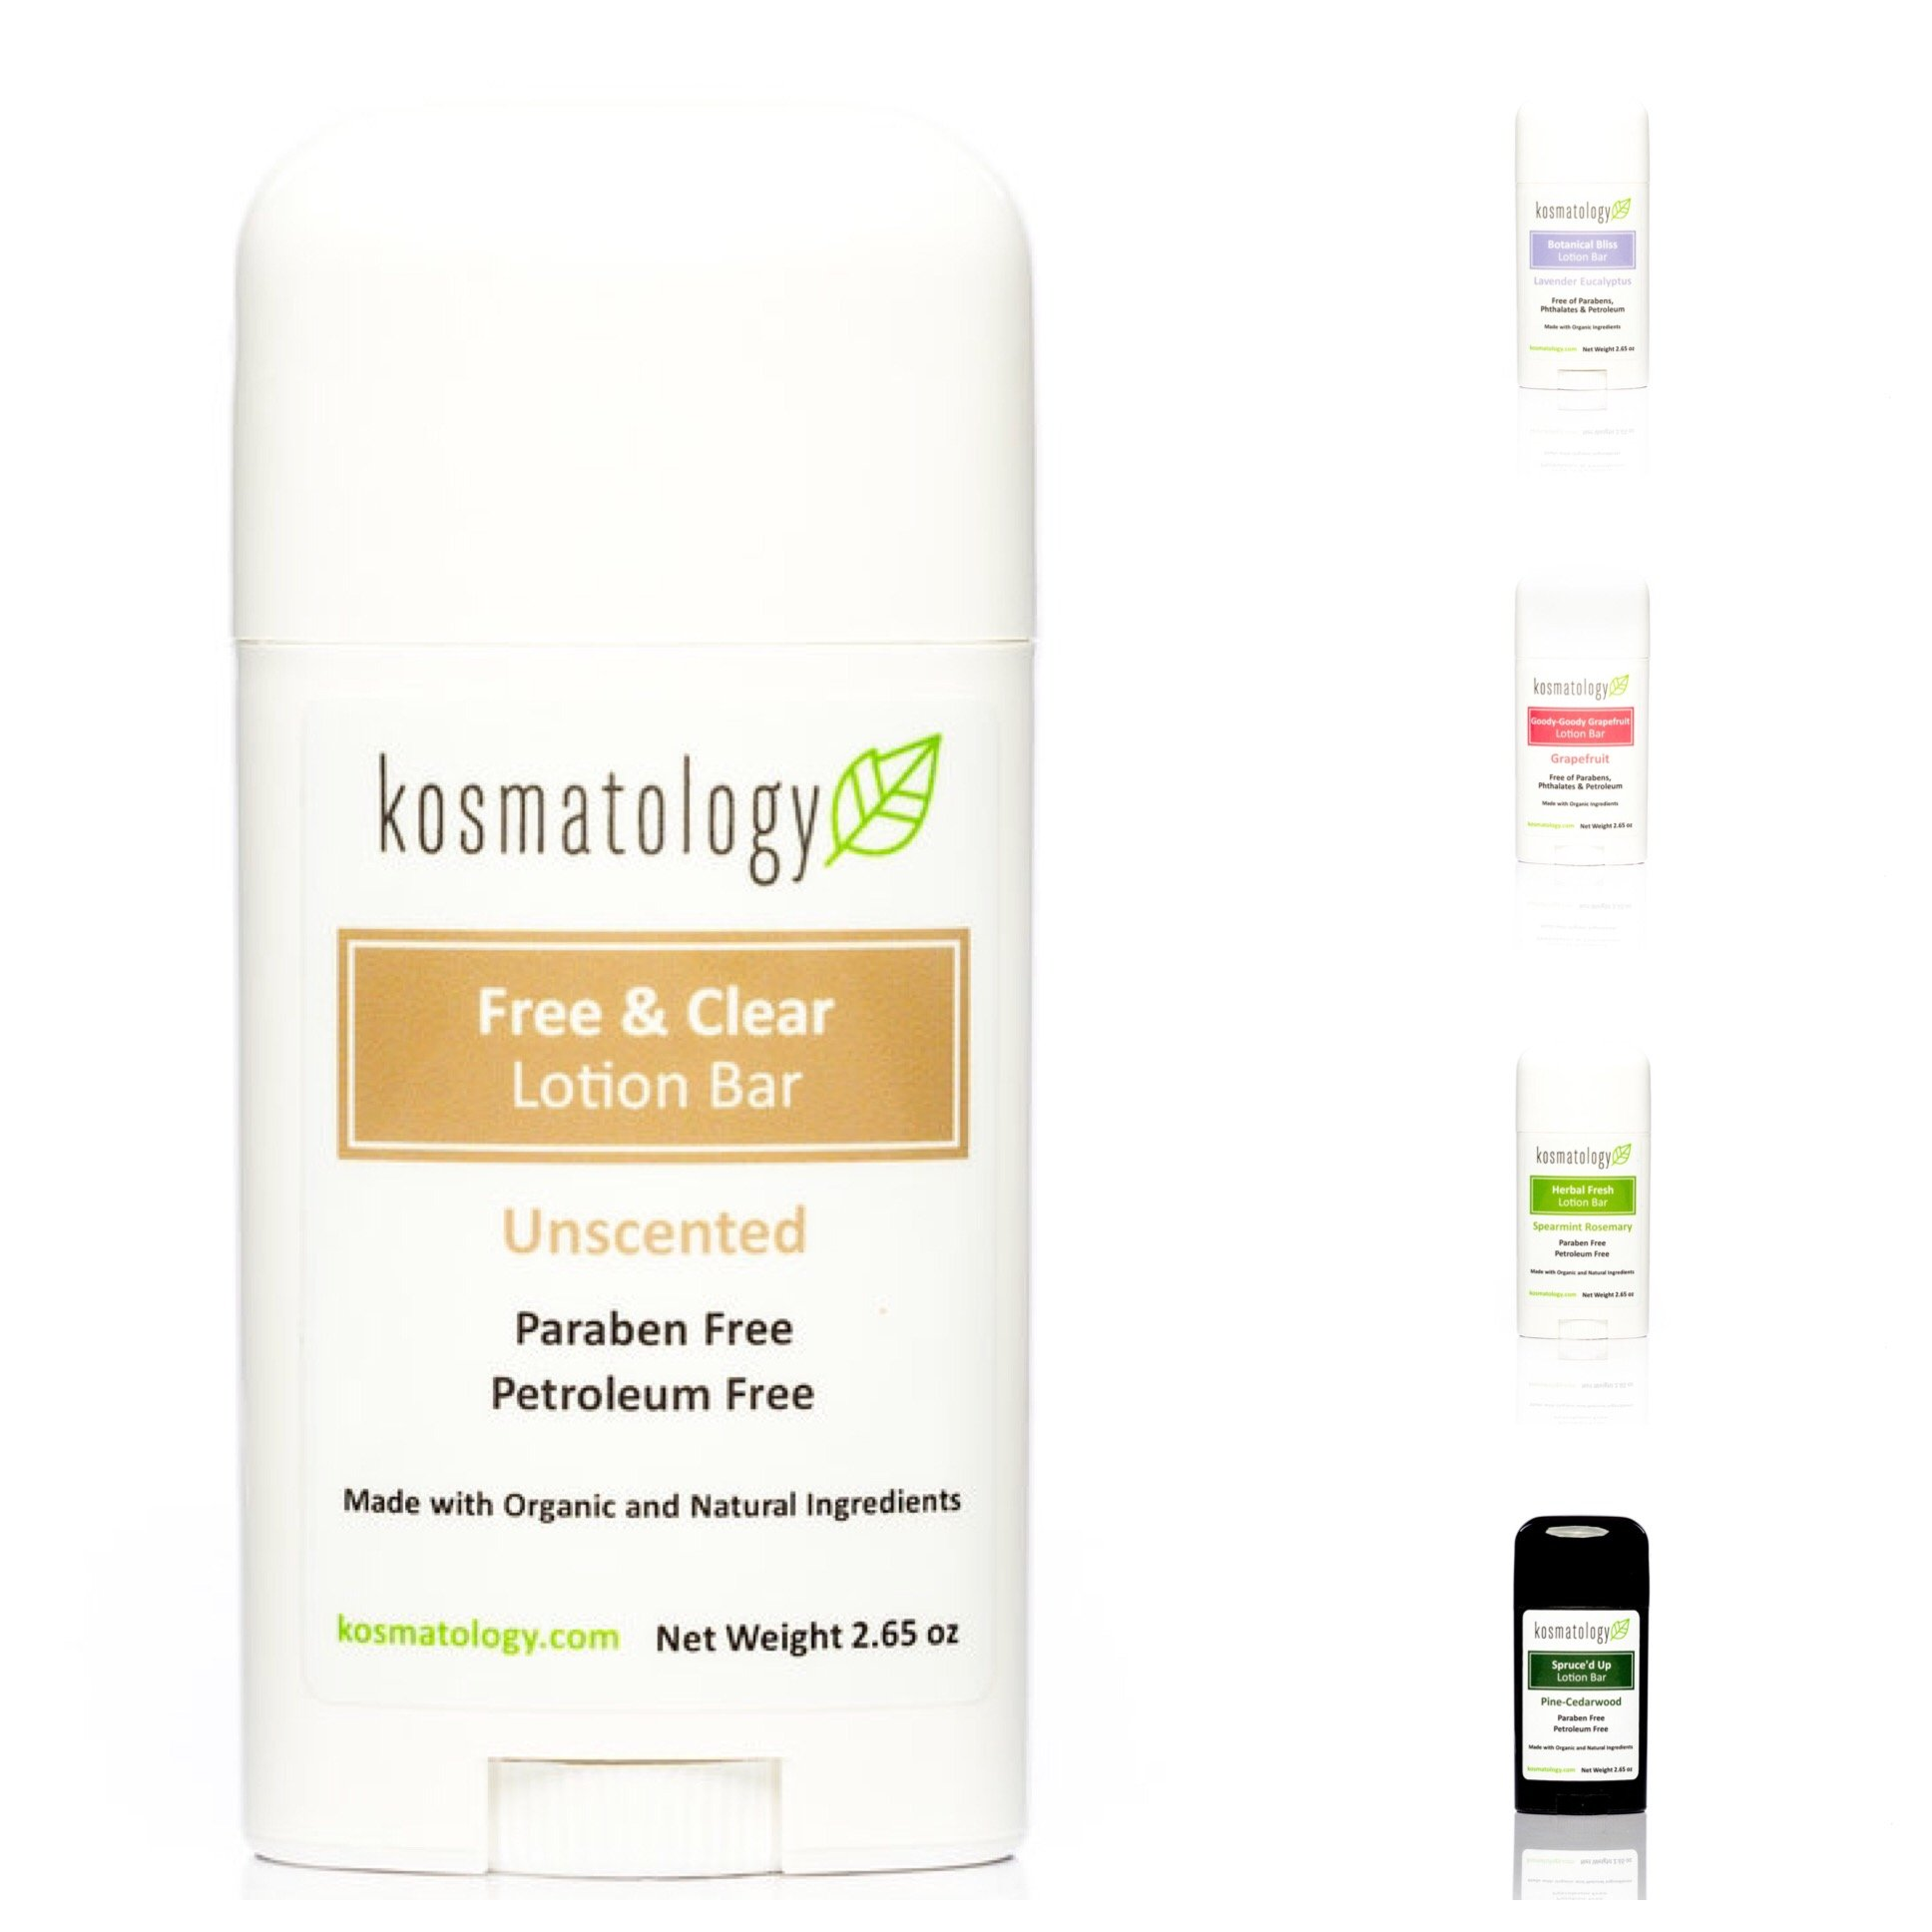 Kosmatology Free & Clear (Unscented) Organic Lotion Bar, 2.65 oz by kosmatology